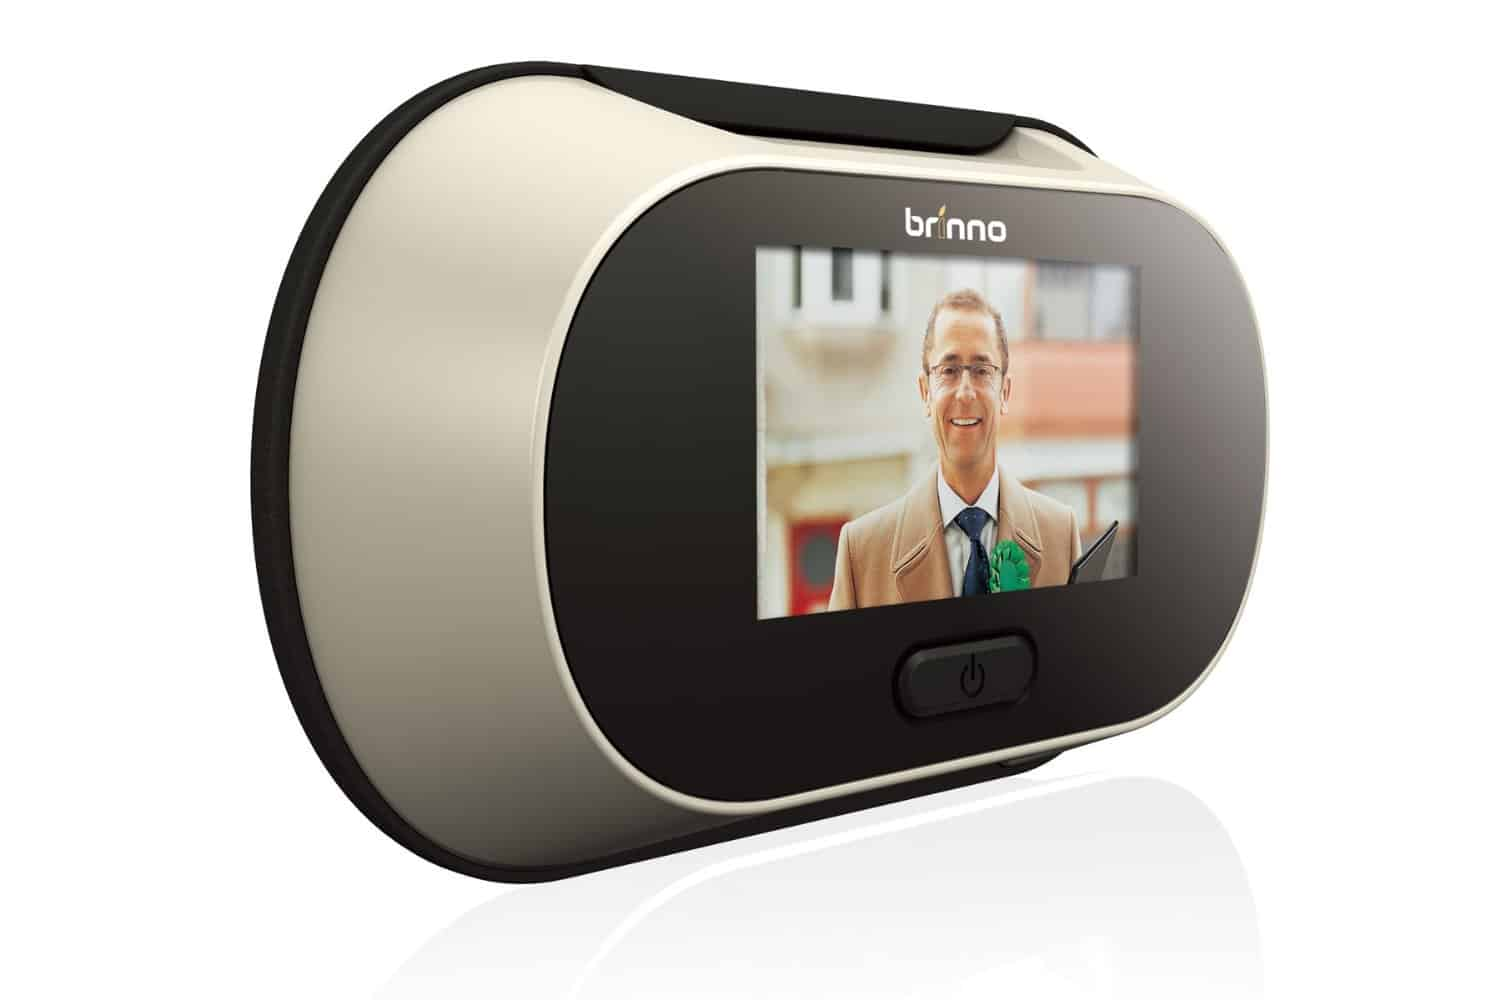 Brinno Digital PeepHole Viewer Home Gadget